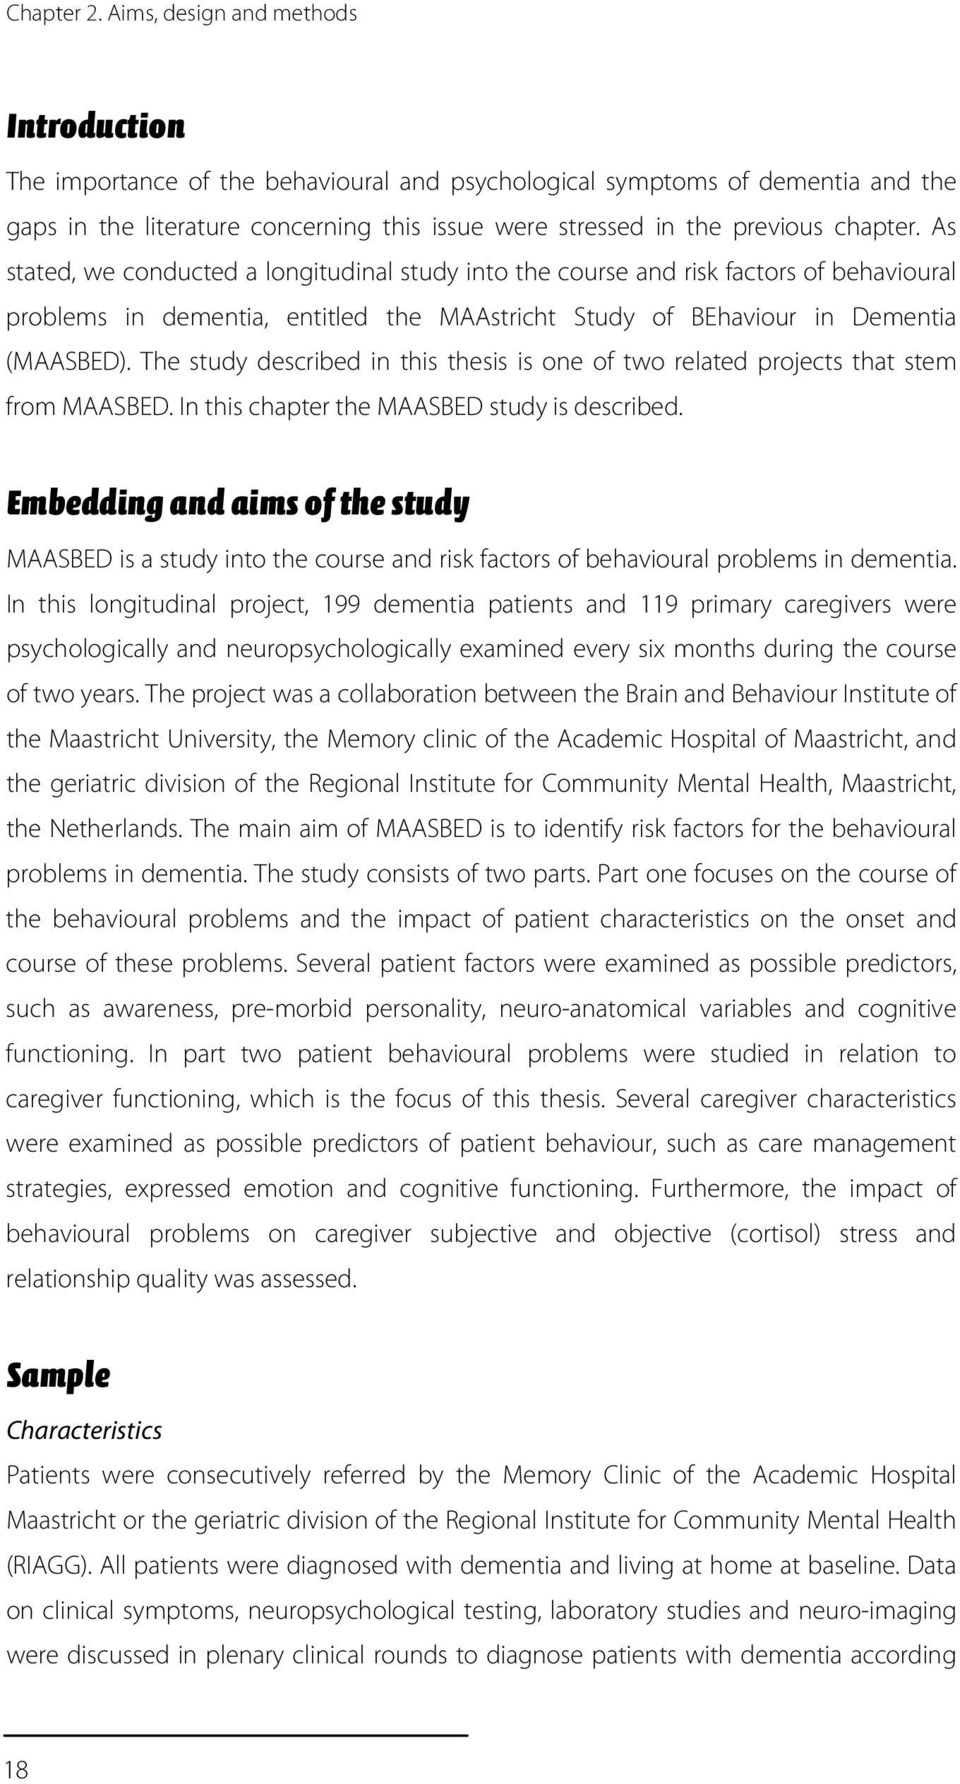 chapter. As stated, we conducted a longitudinal study into the course and risk factors of behavioural problems in dementia, entitled the MAAstricht Study of BEhaviour in Dementia (MAASBED).